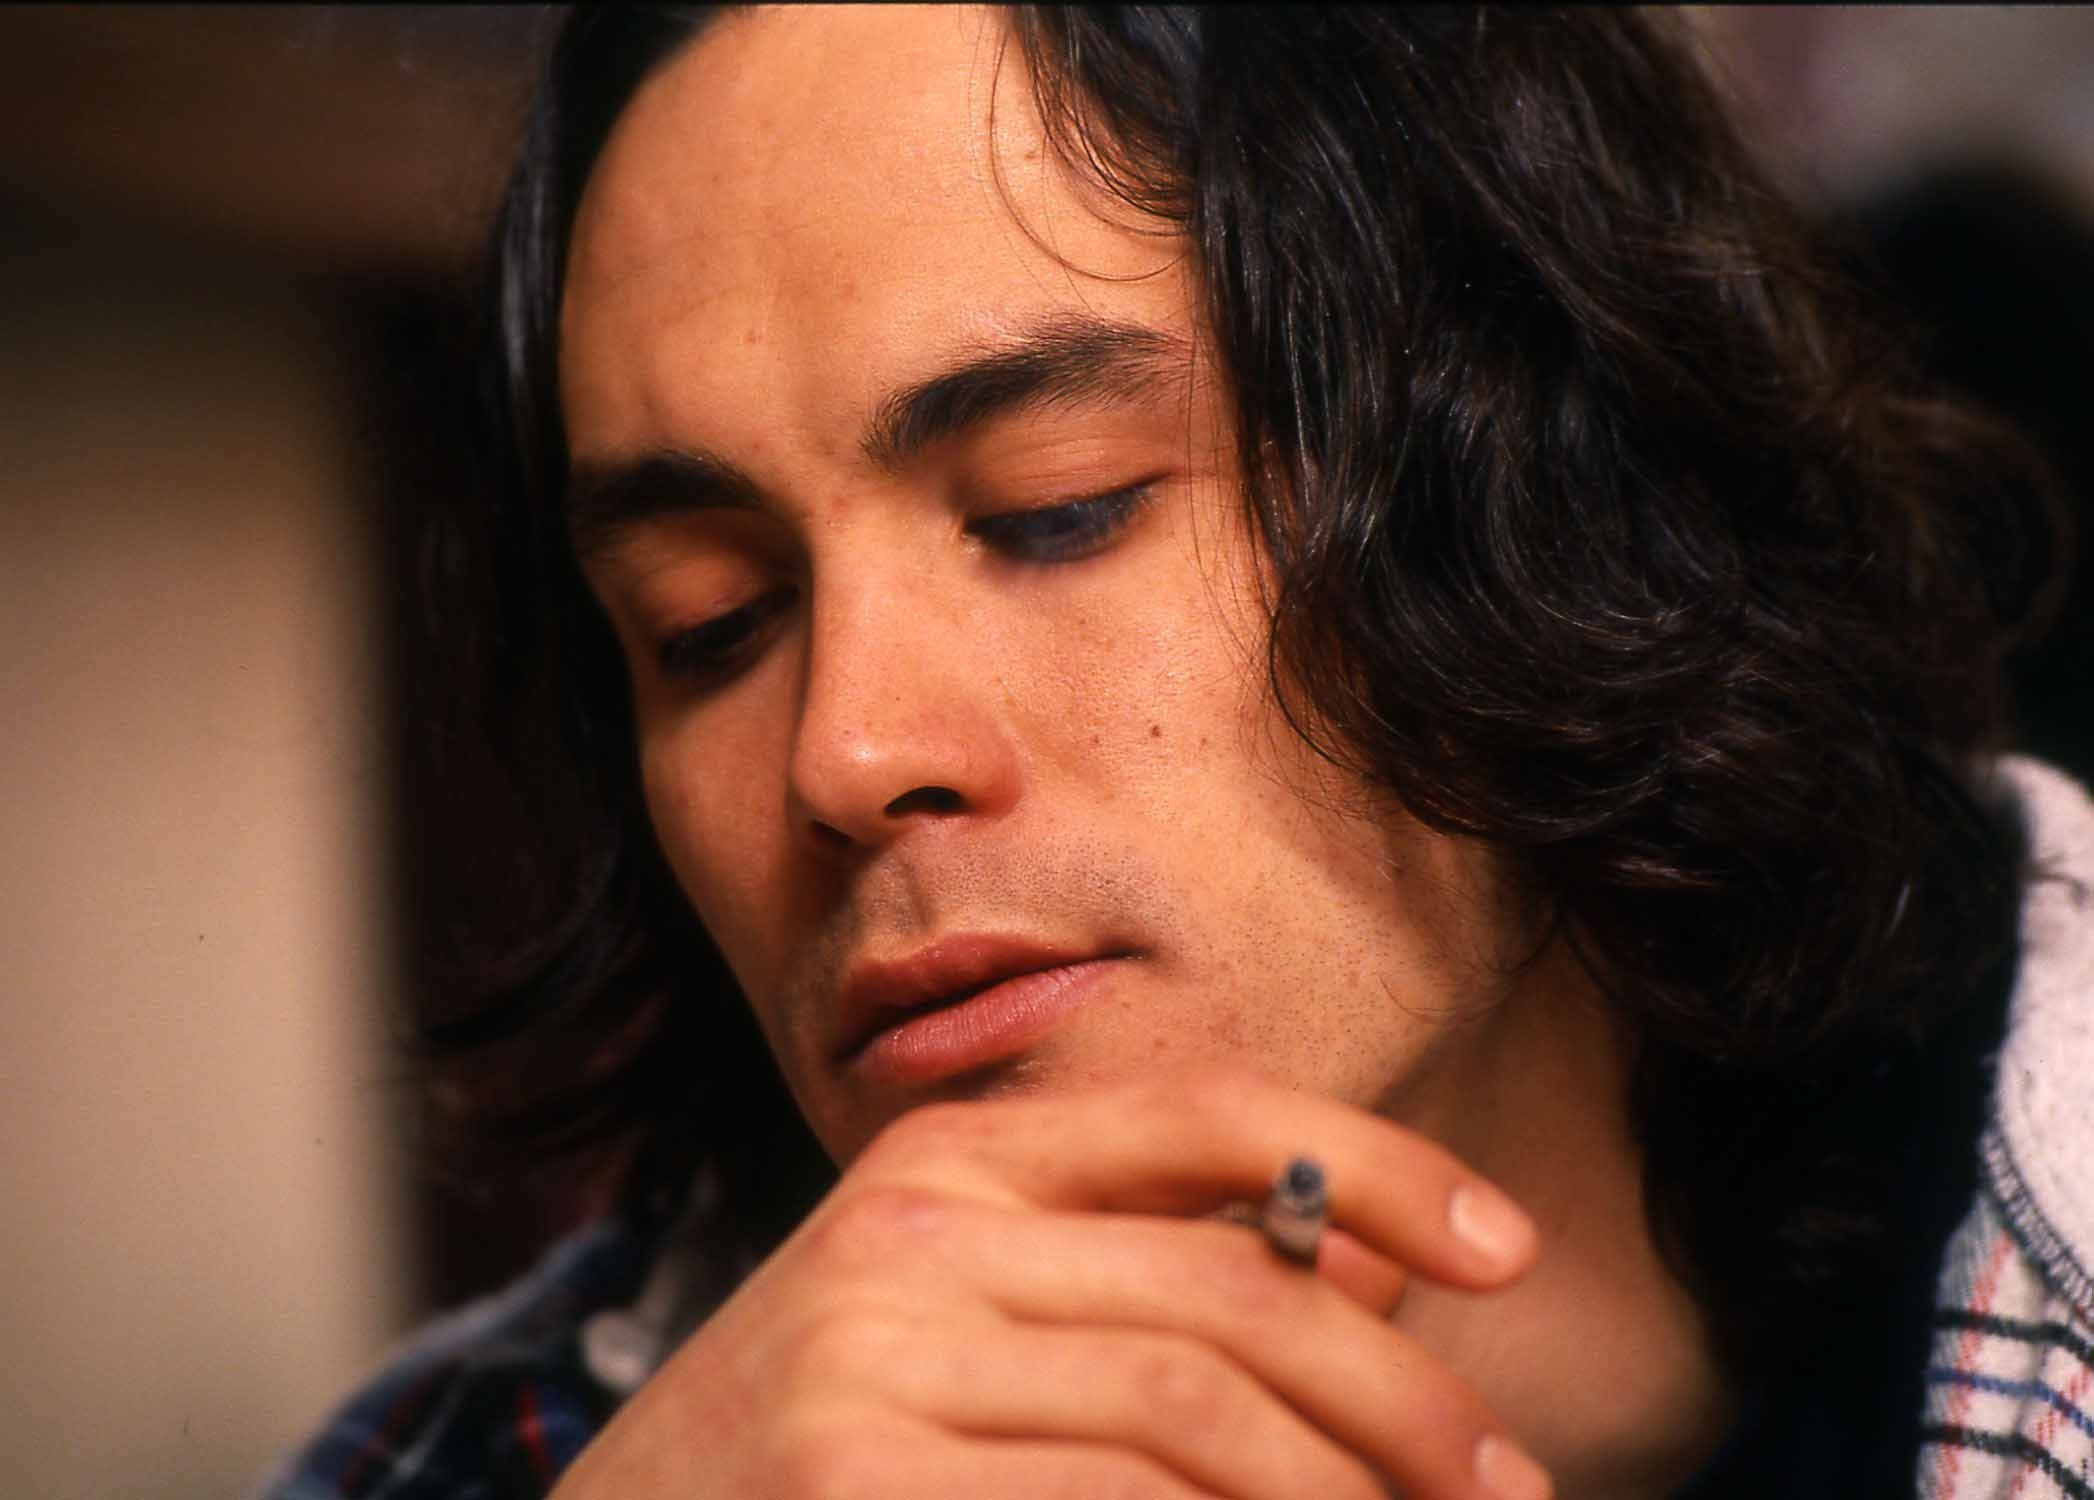 Actor Brandon Lee chain smokes cigarettes in his trailer during a late-night interview on March 23, 1993, the week before he died on the set of The Crow in Wilmington N.C. - Photo by Jamie Moncrief / Wilmington Star-News